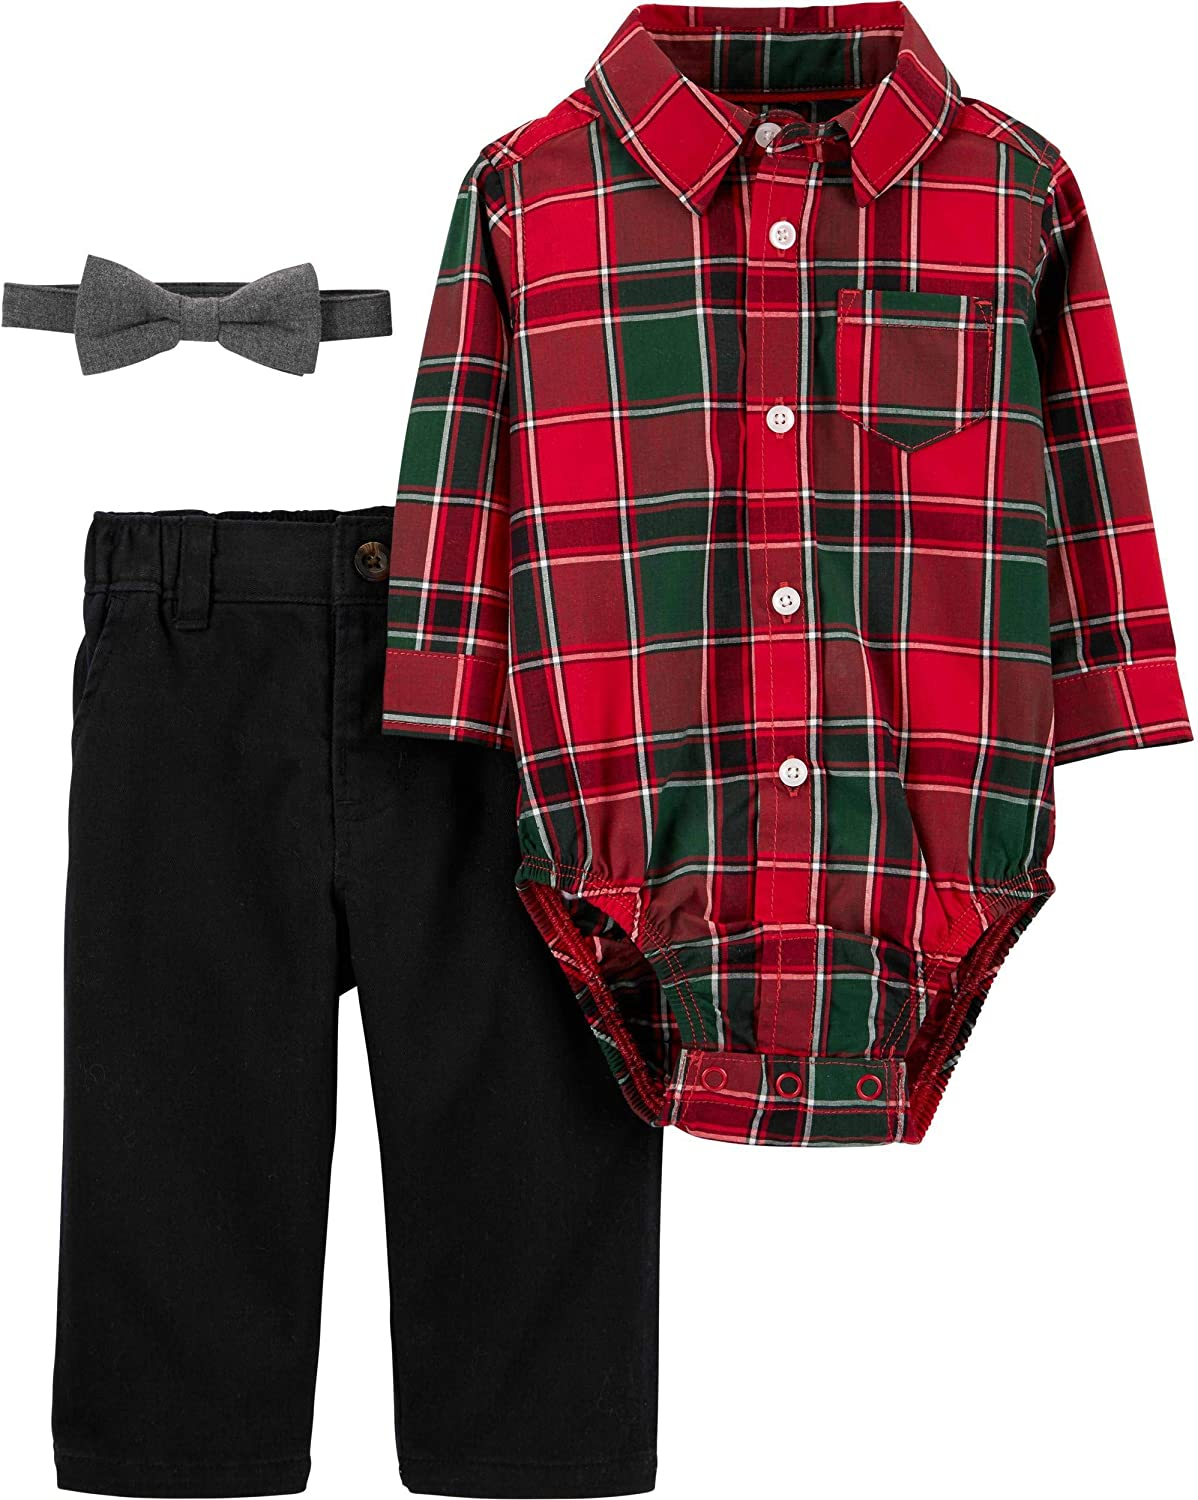 Carters Just One You Baby Boys 3pc Plaid Elephant Shorts Set 6 Months